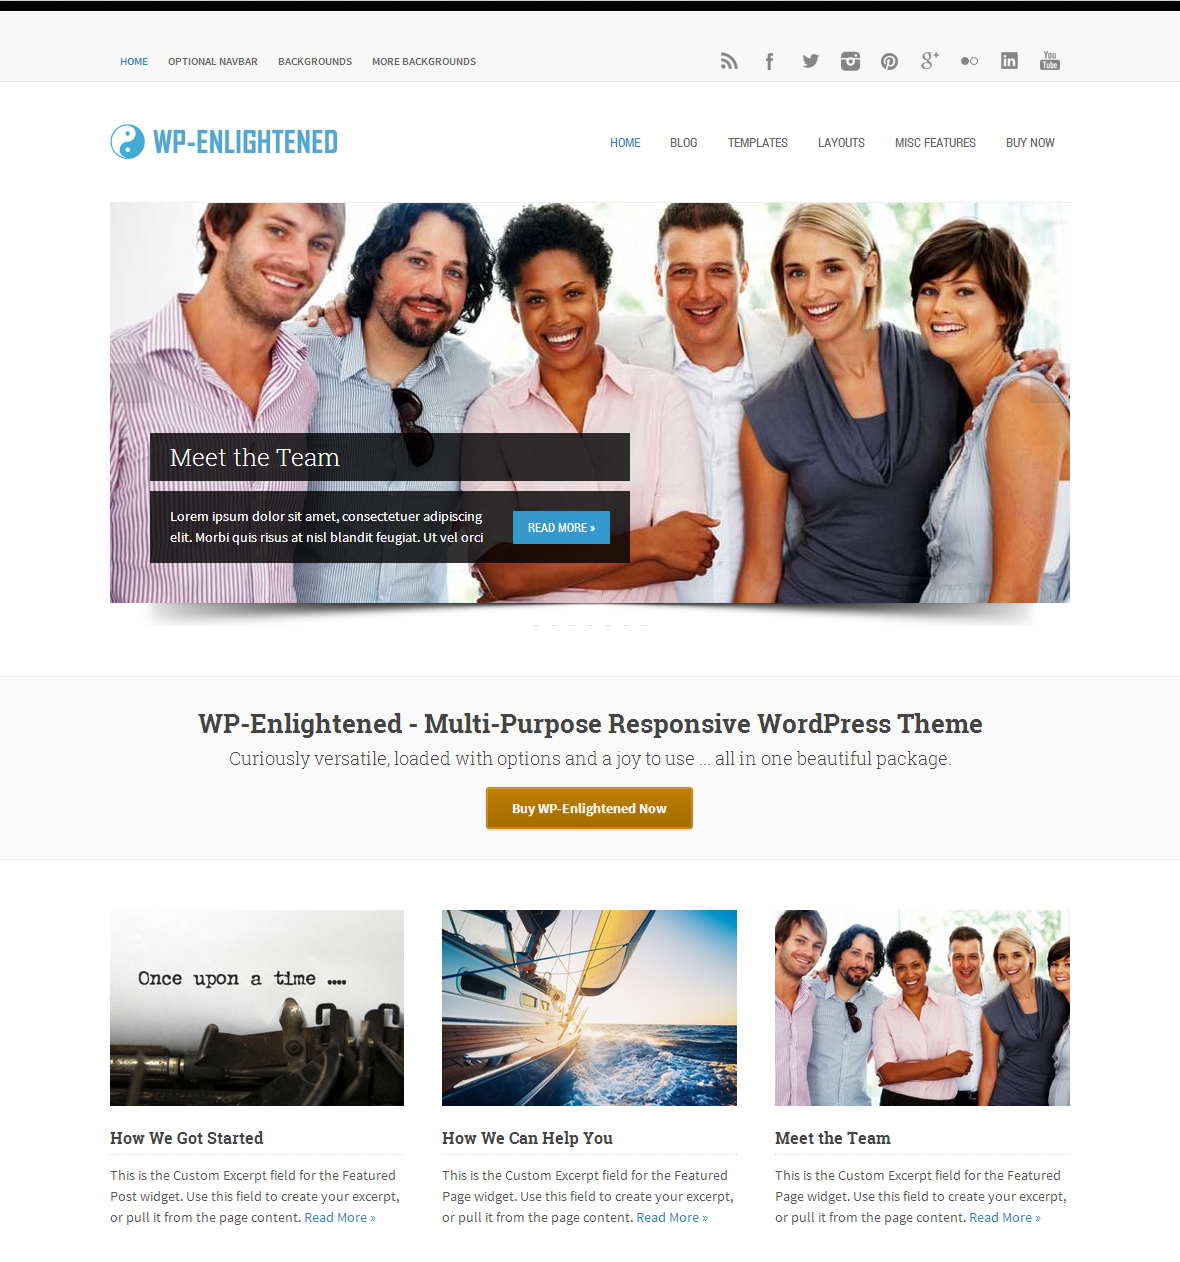 WP-Enlightened - Solostream Premium WordPress Theme - Free